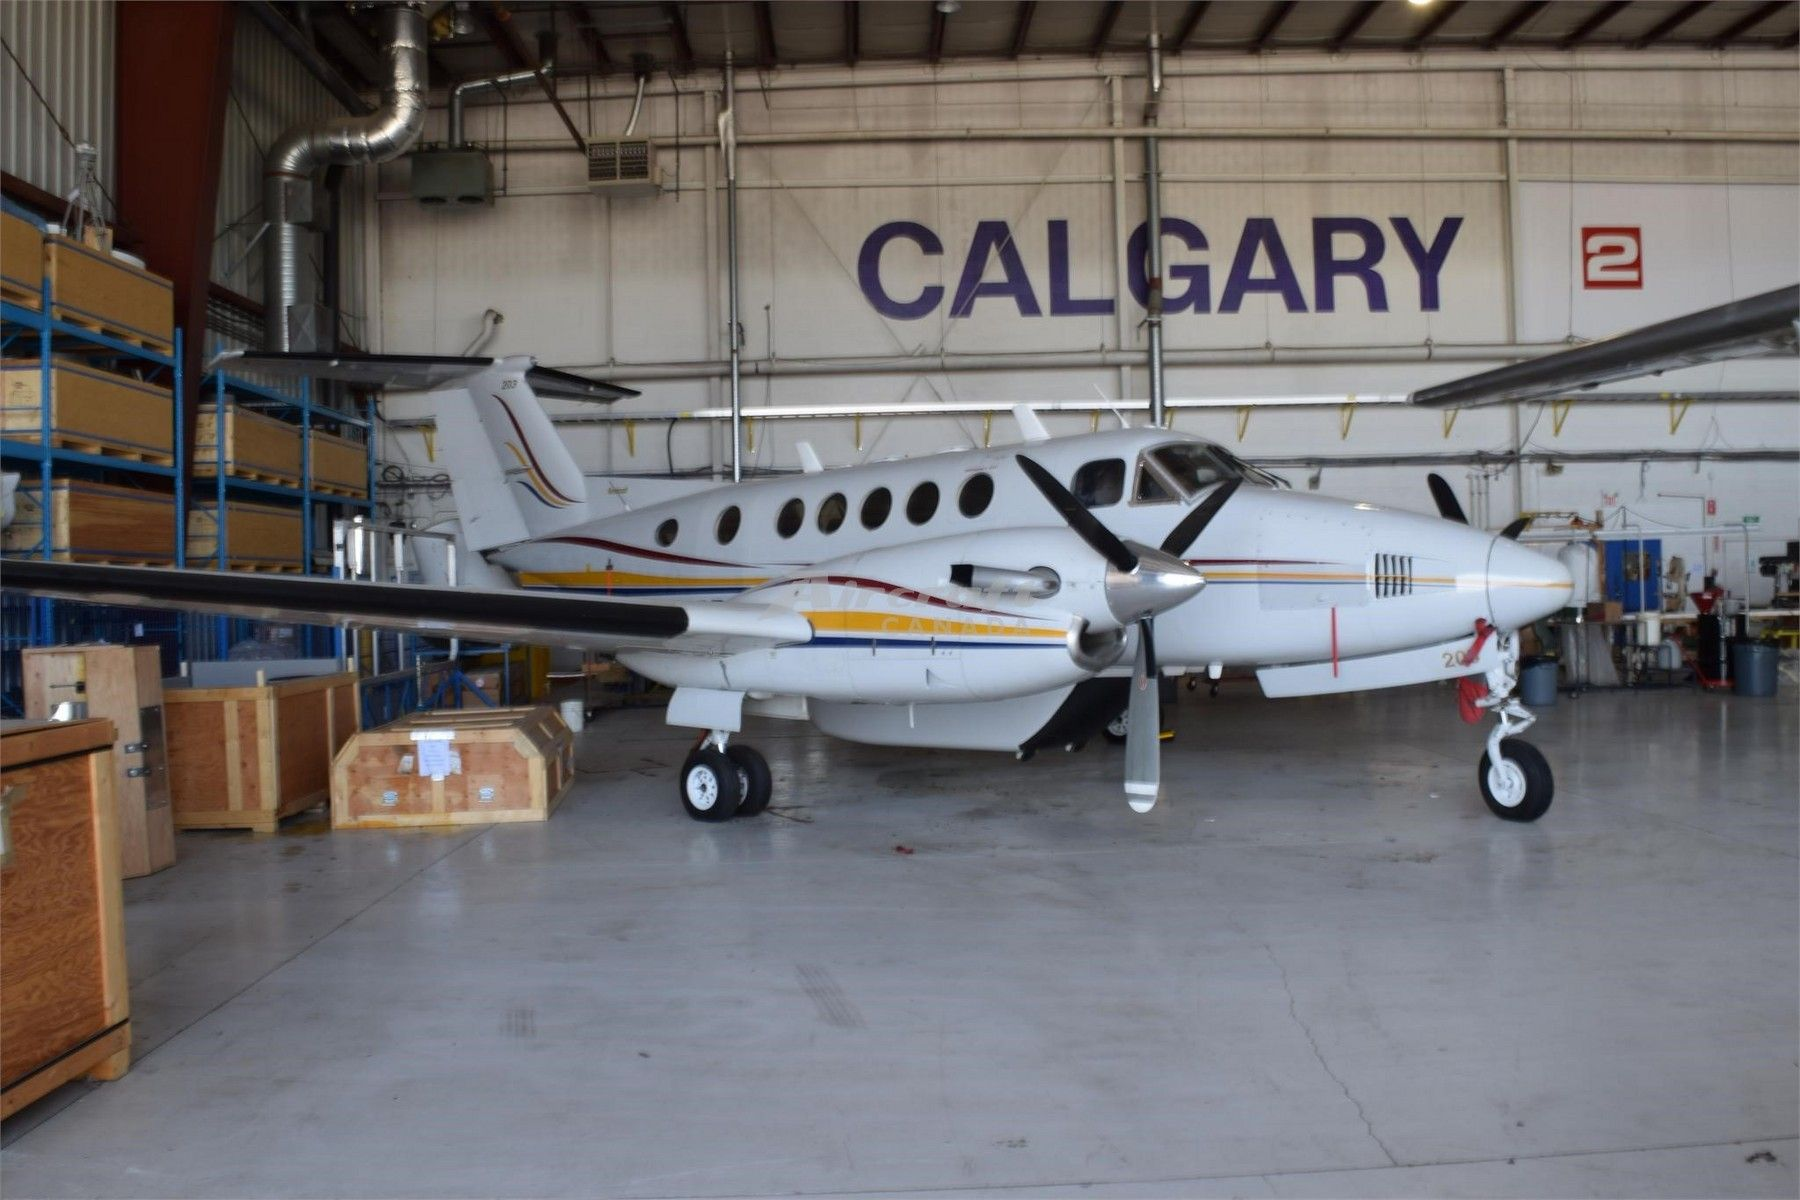 1978 Beechcraft King Air 200 for sale in AB Canada => www